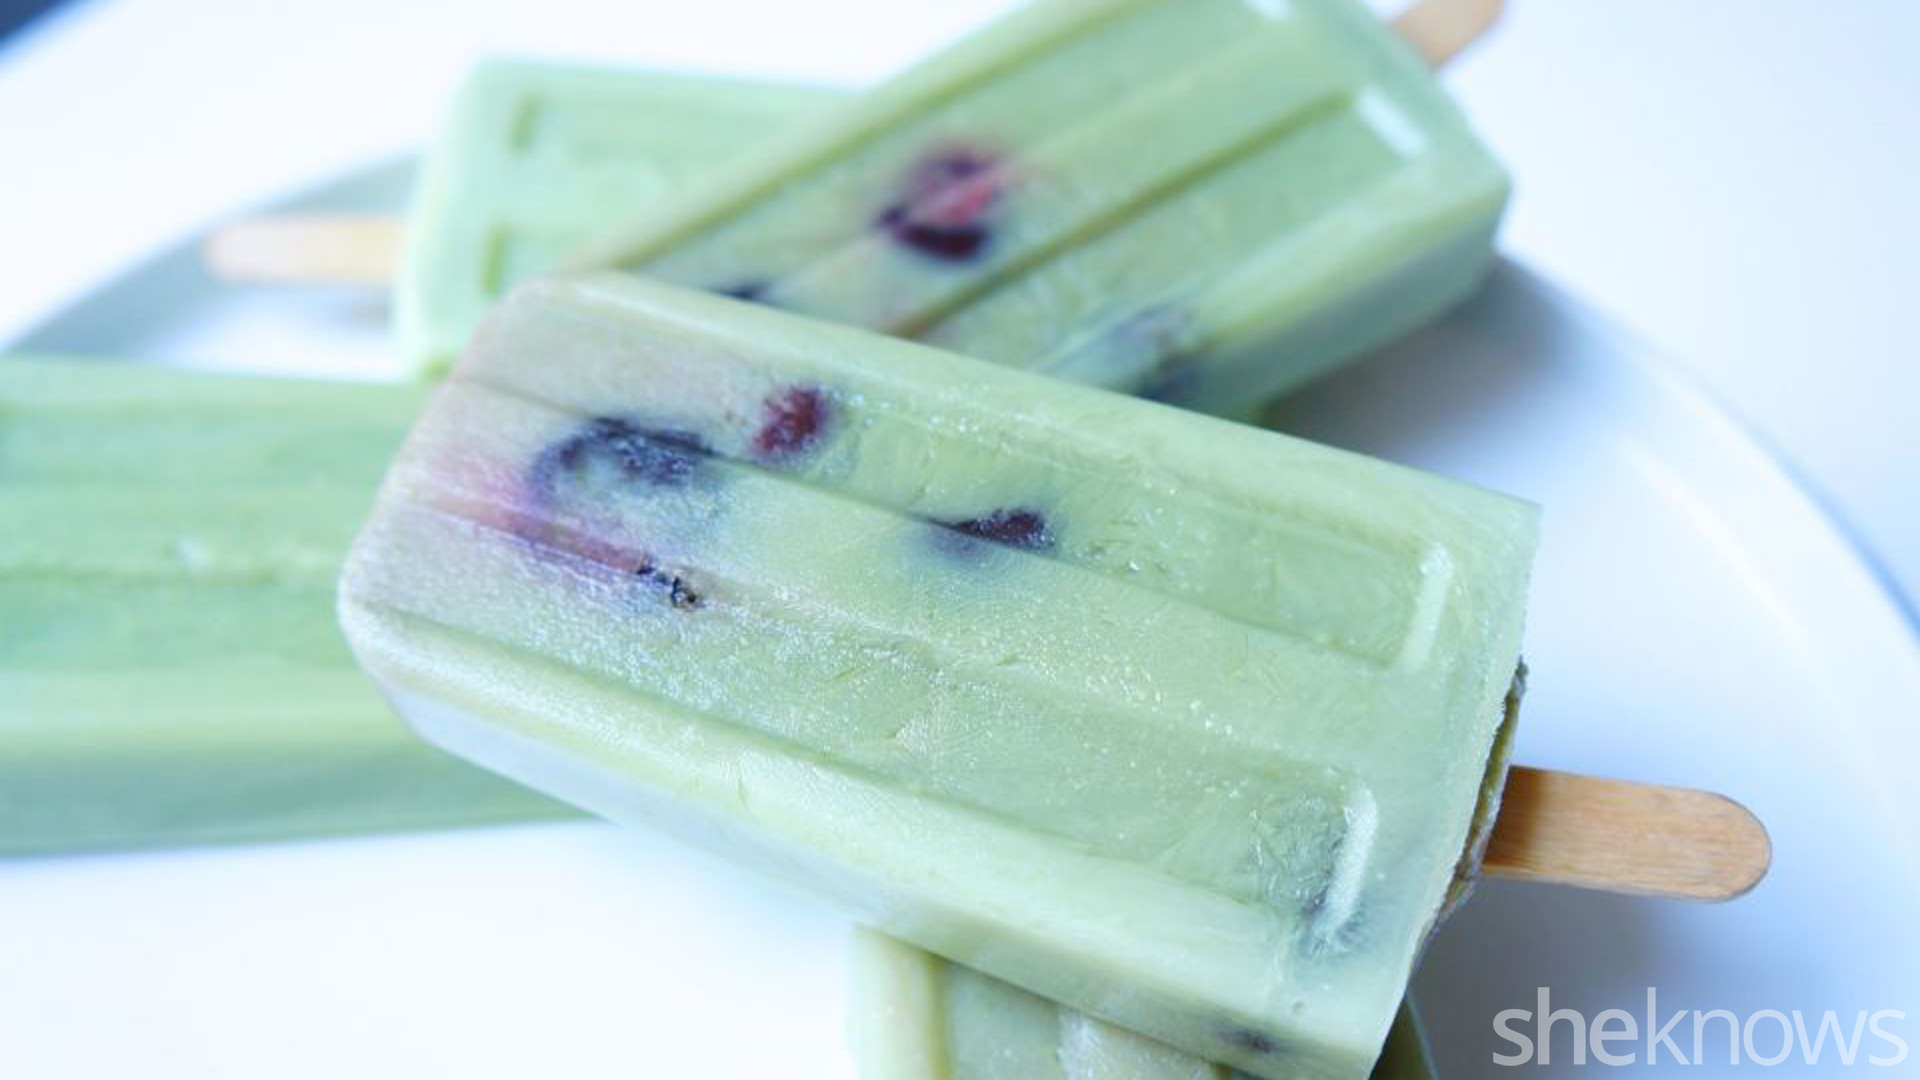 Matcha green tea and ginger pops with cherries